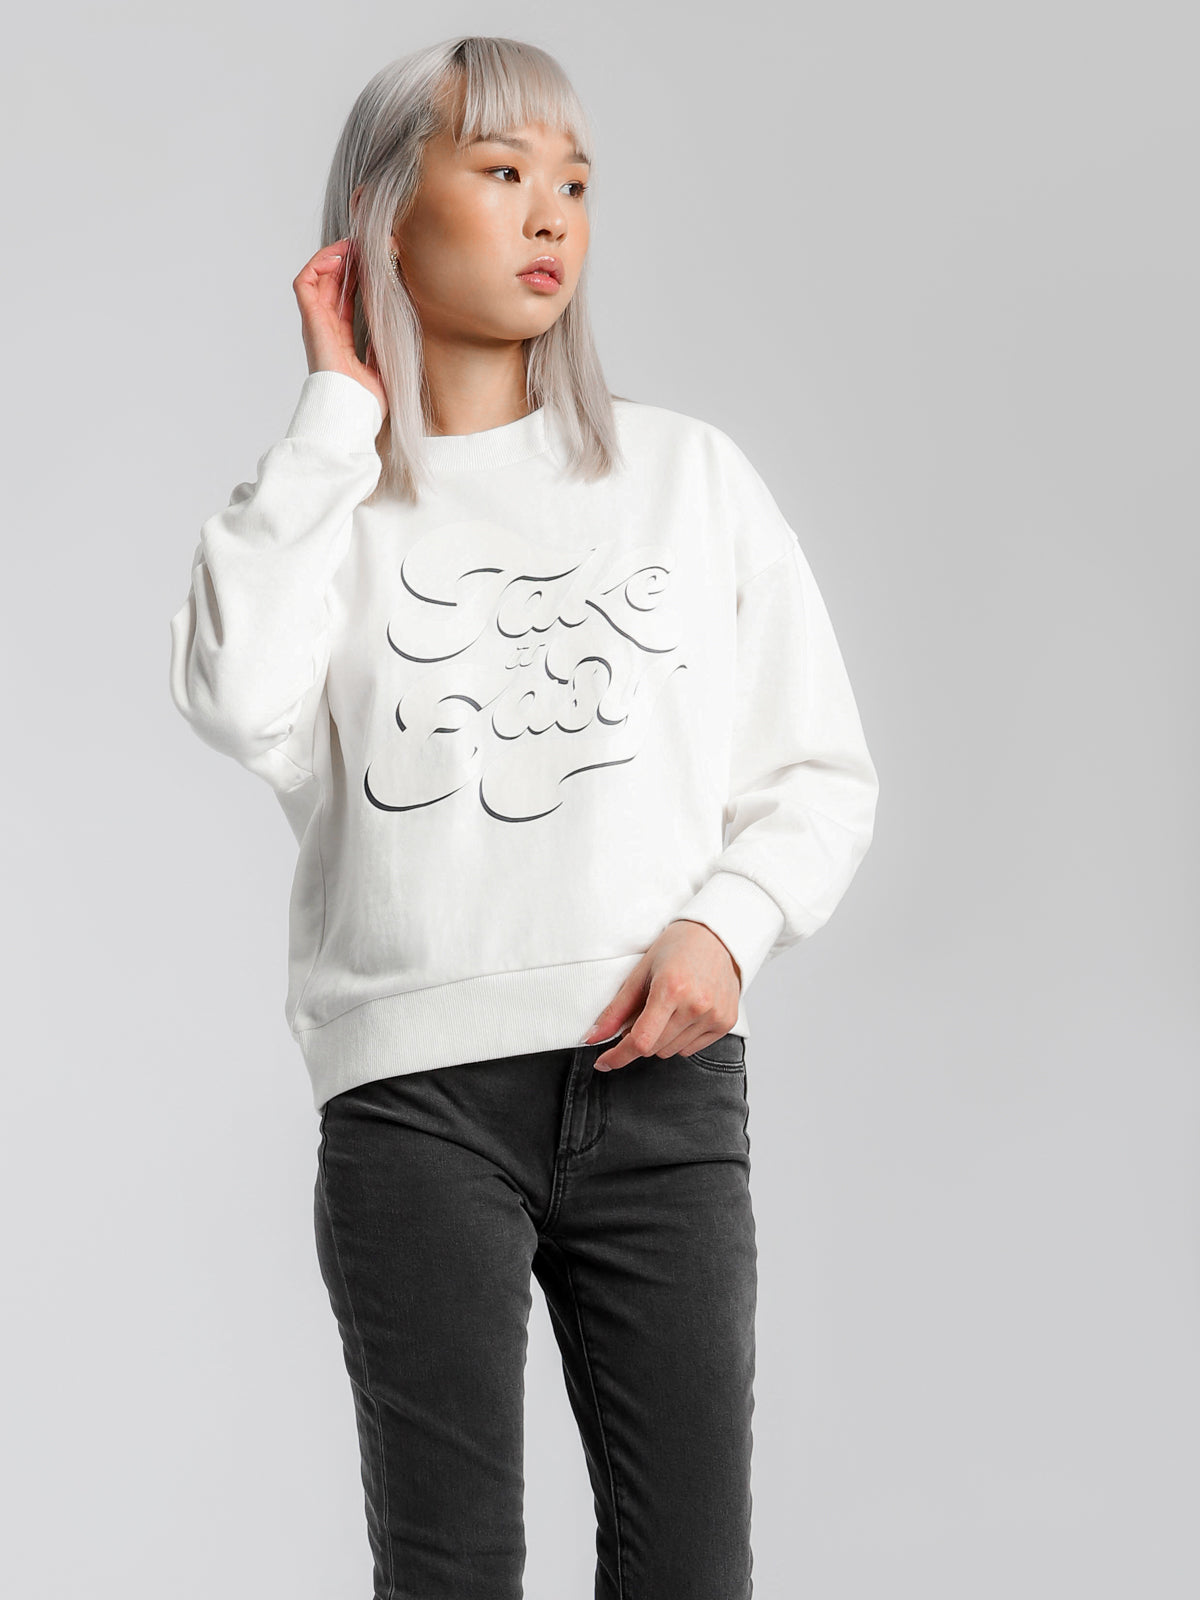 Take It Easy Sweatshirt in Off White